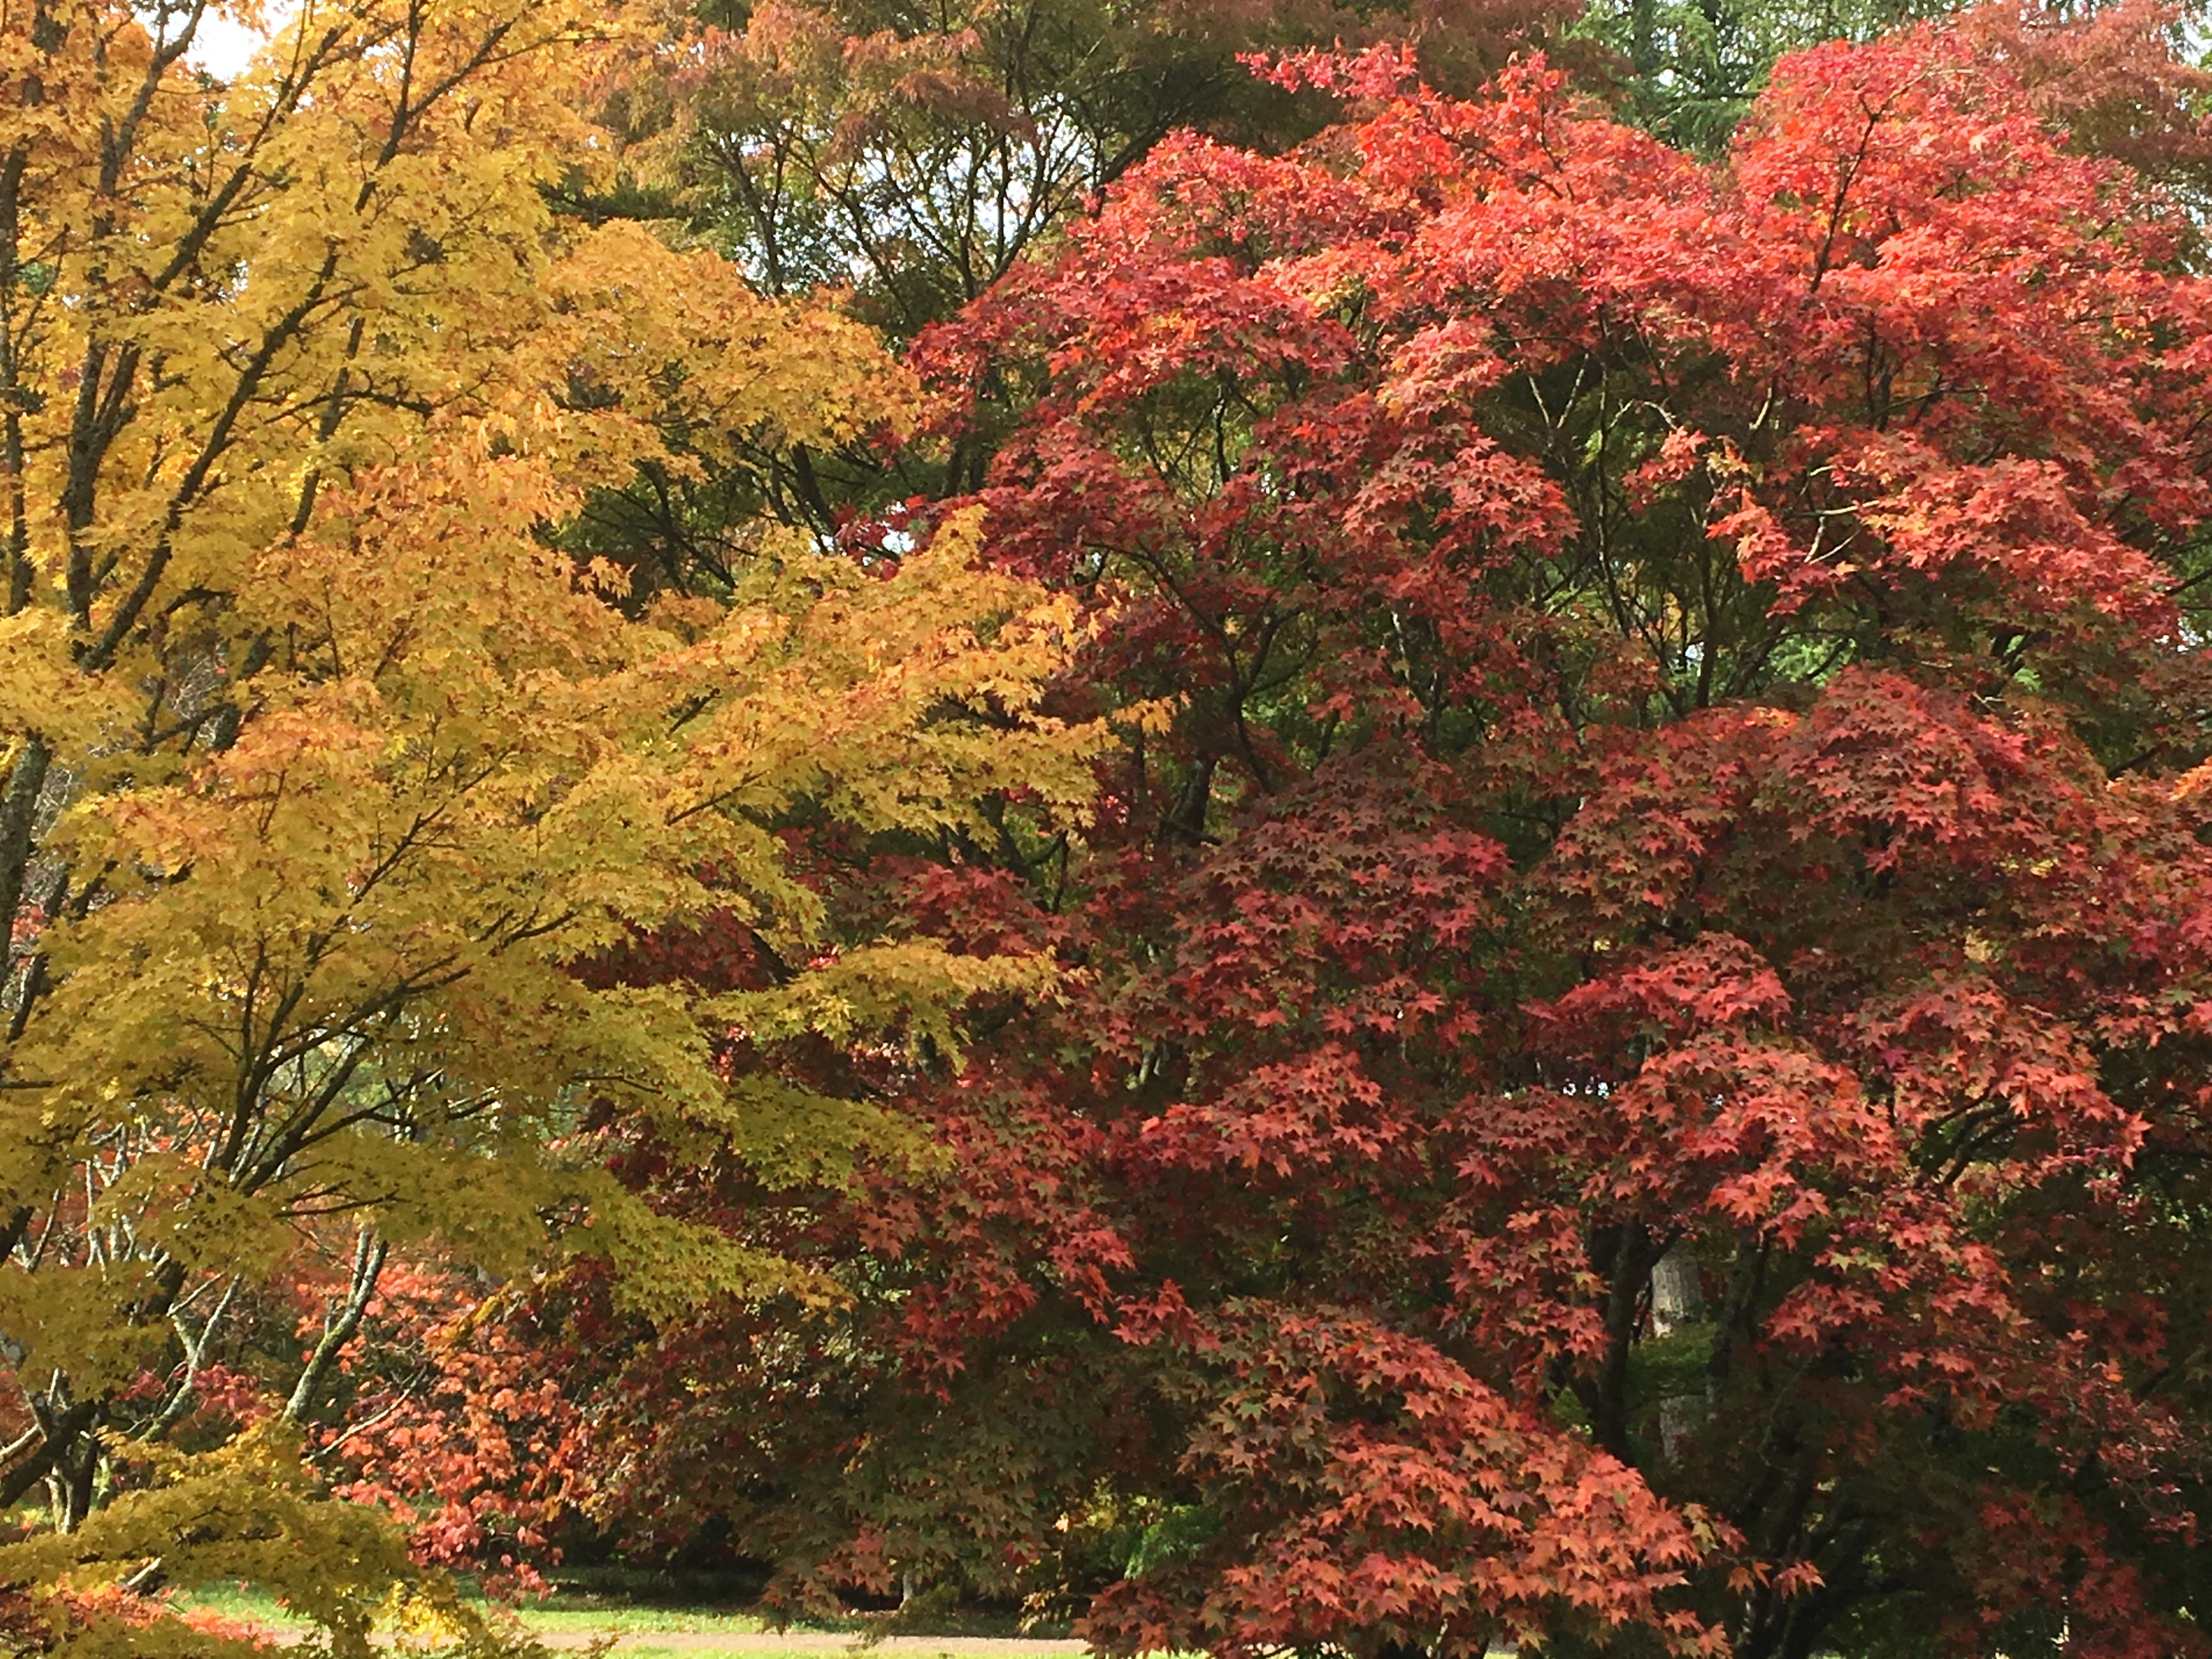 Acer trees for autumn and early winter colour